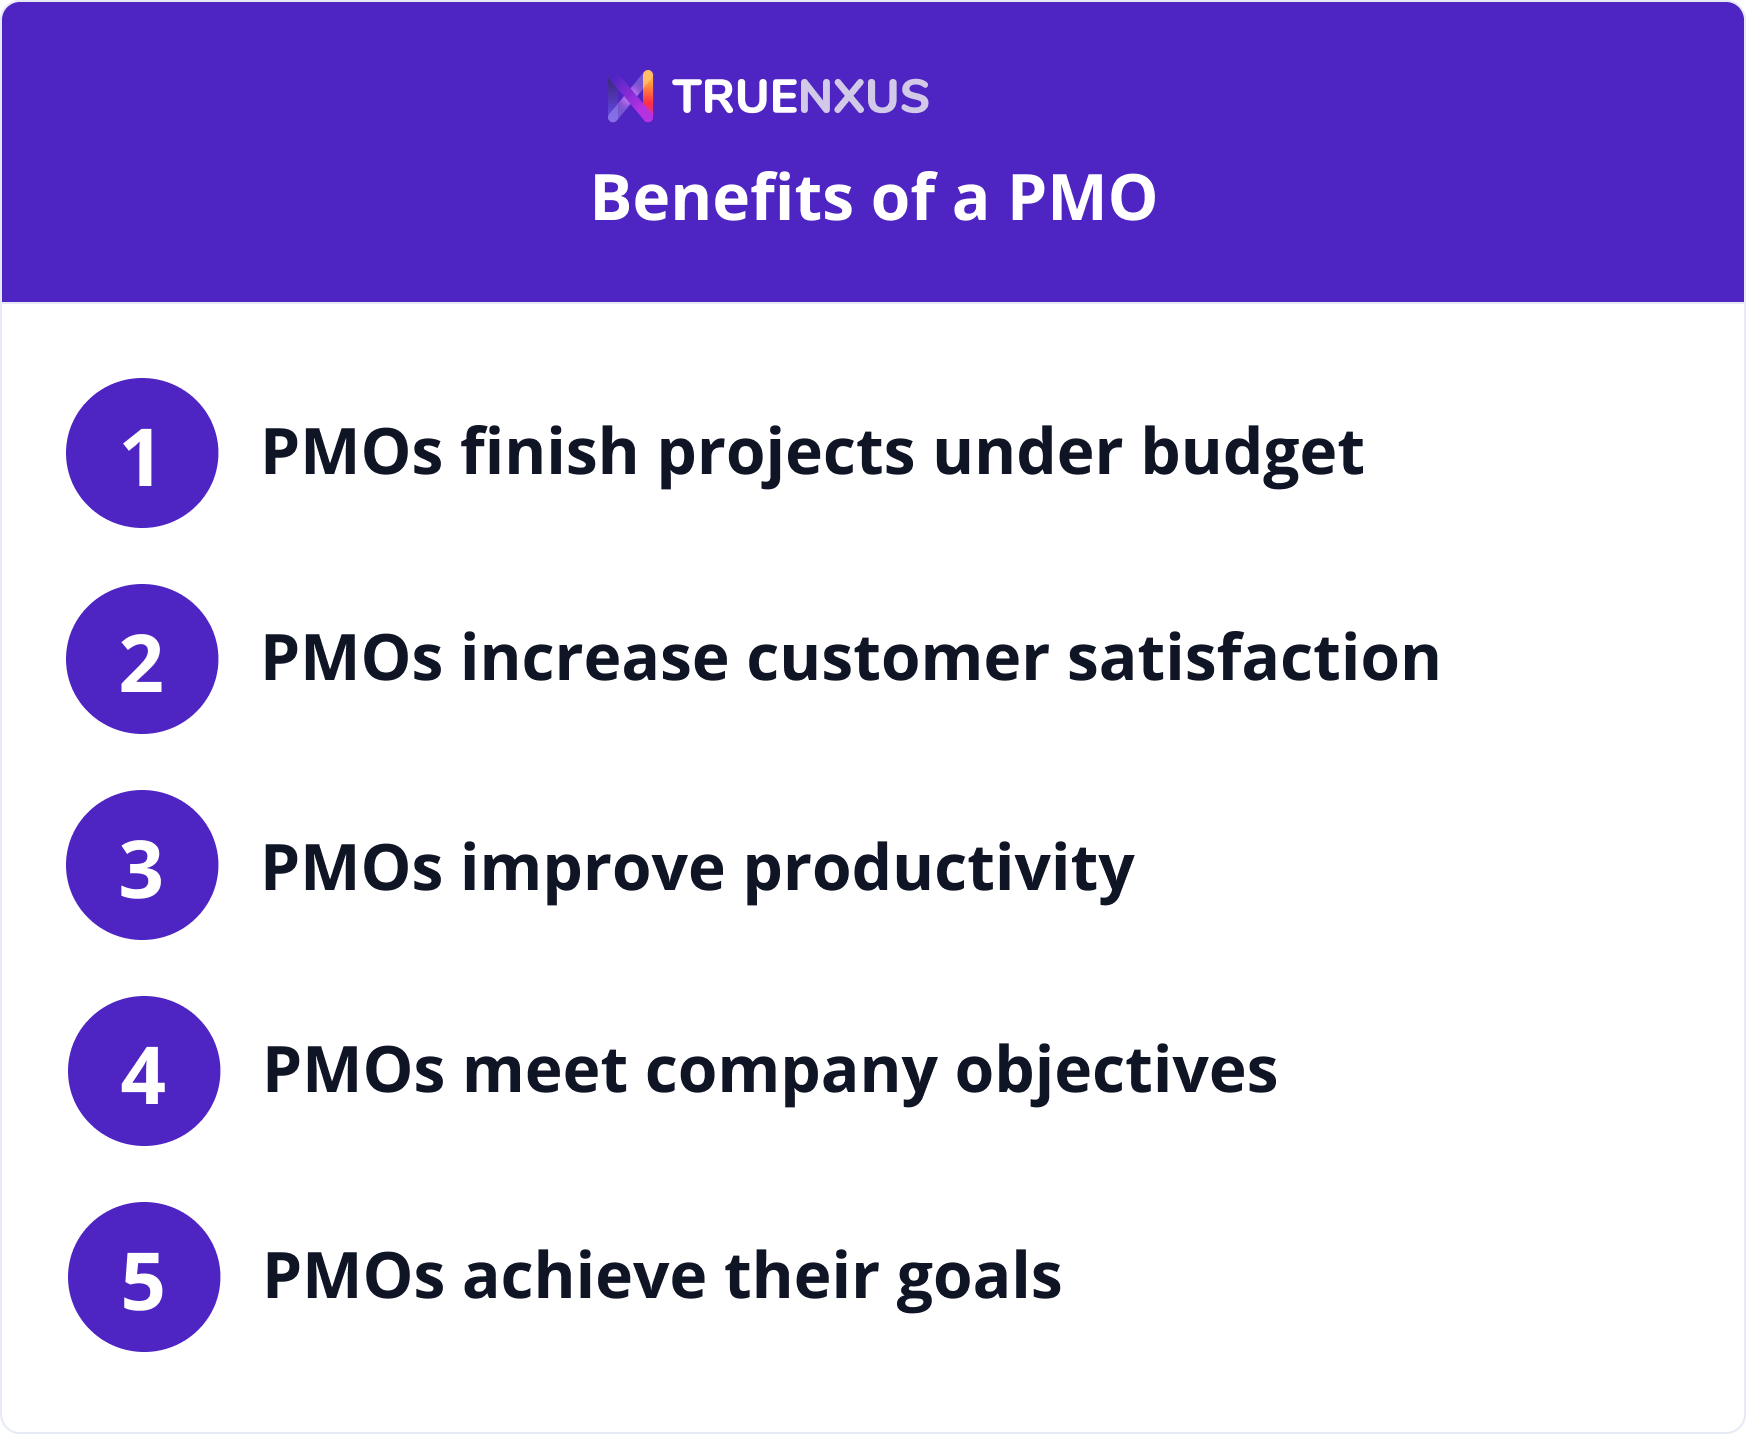 Benefits of a PMO